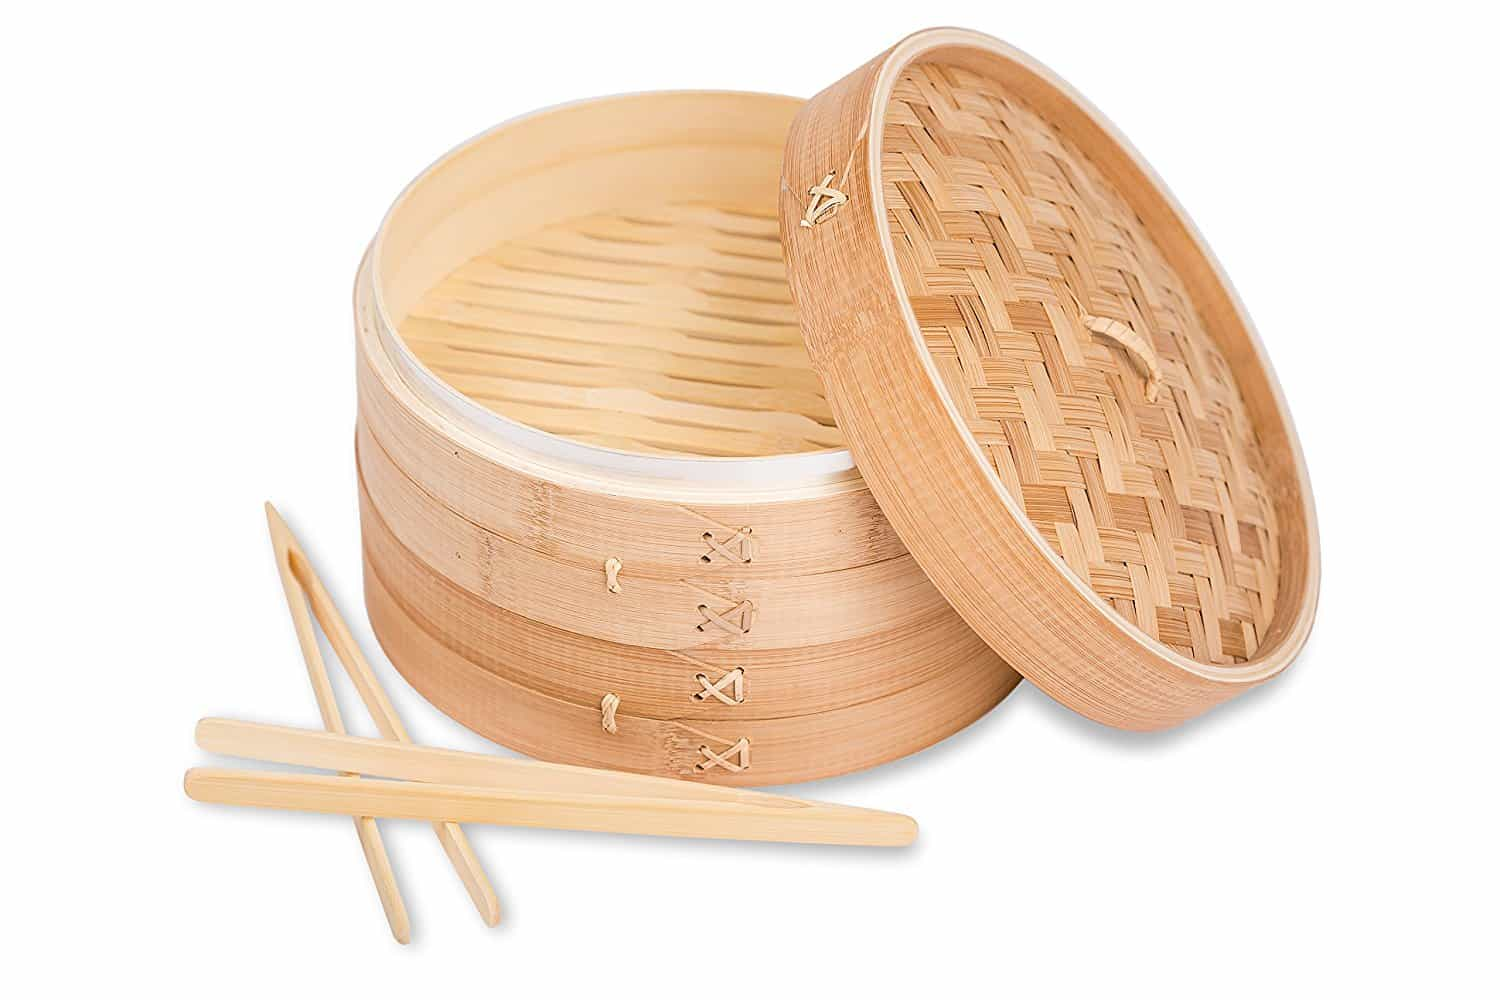 bamboo steamer vs metal steamer